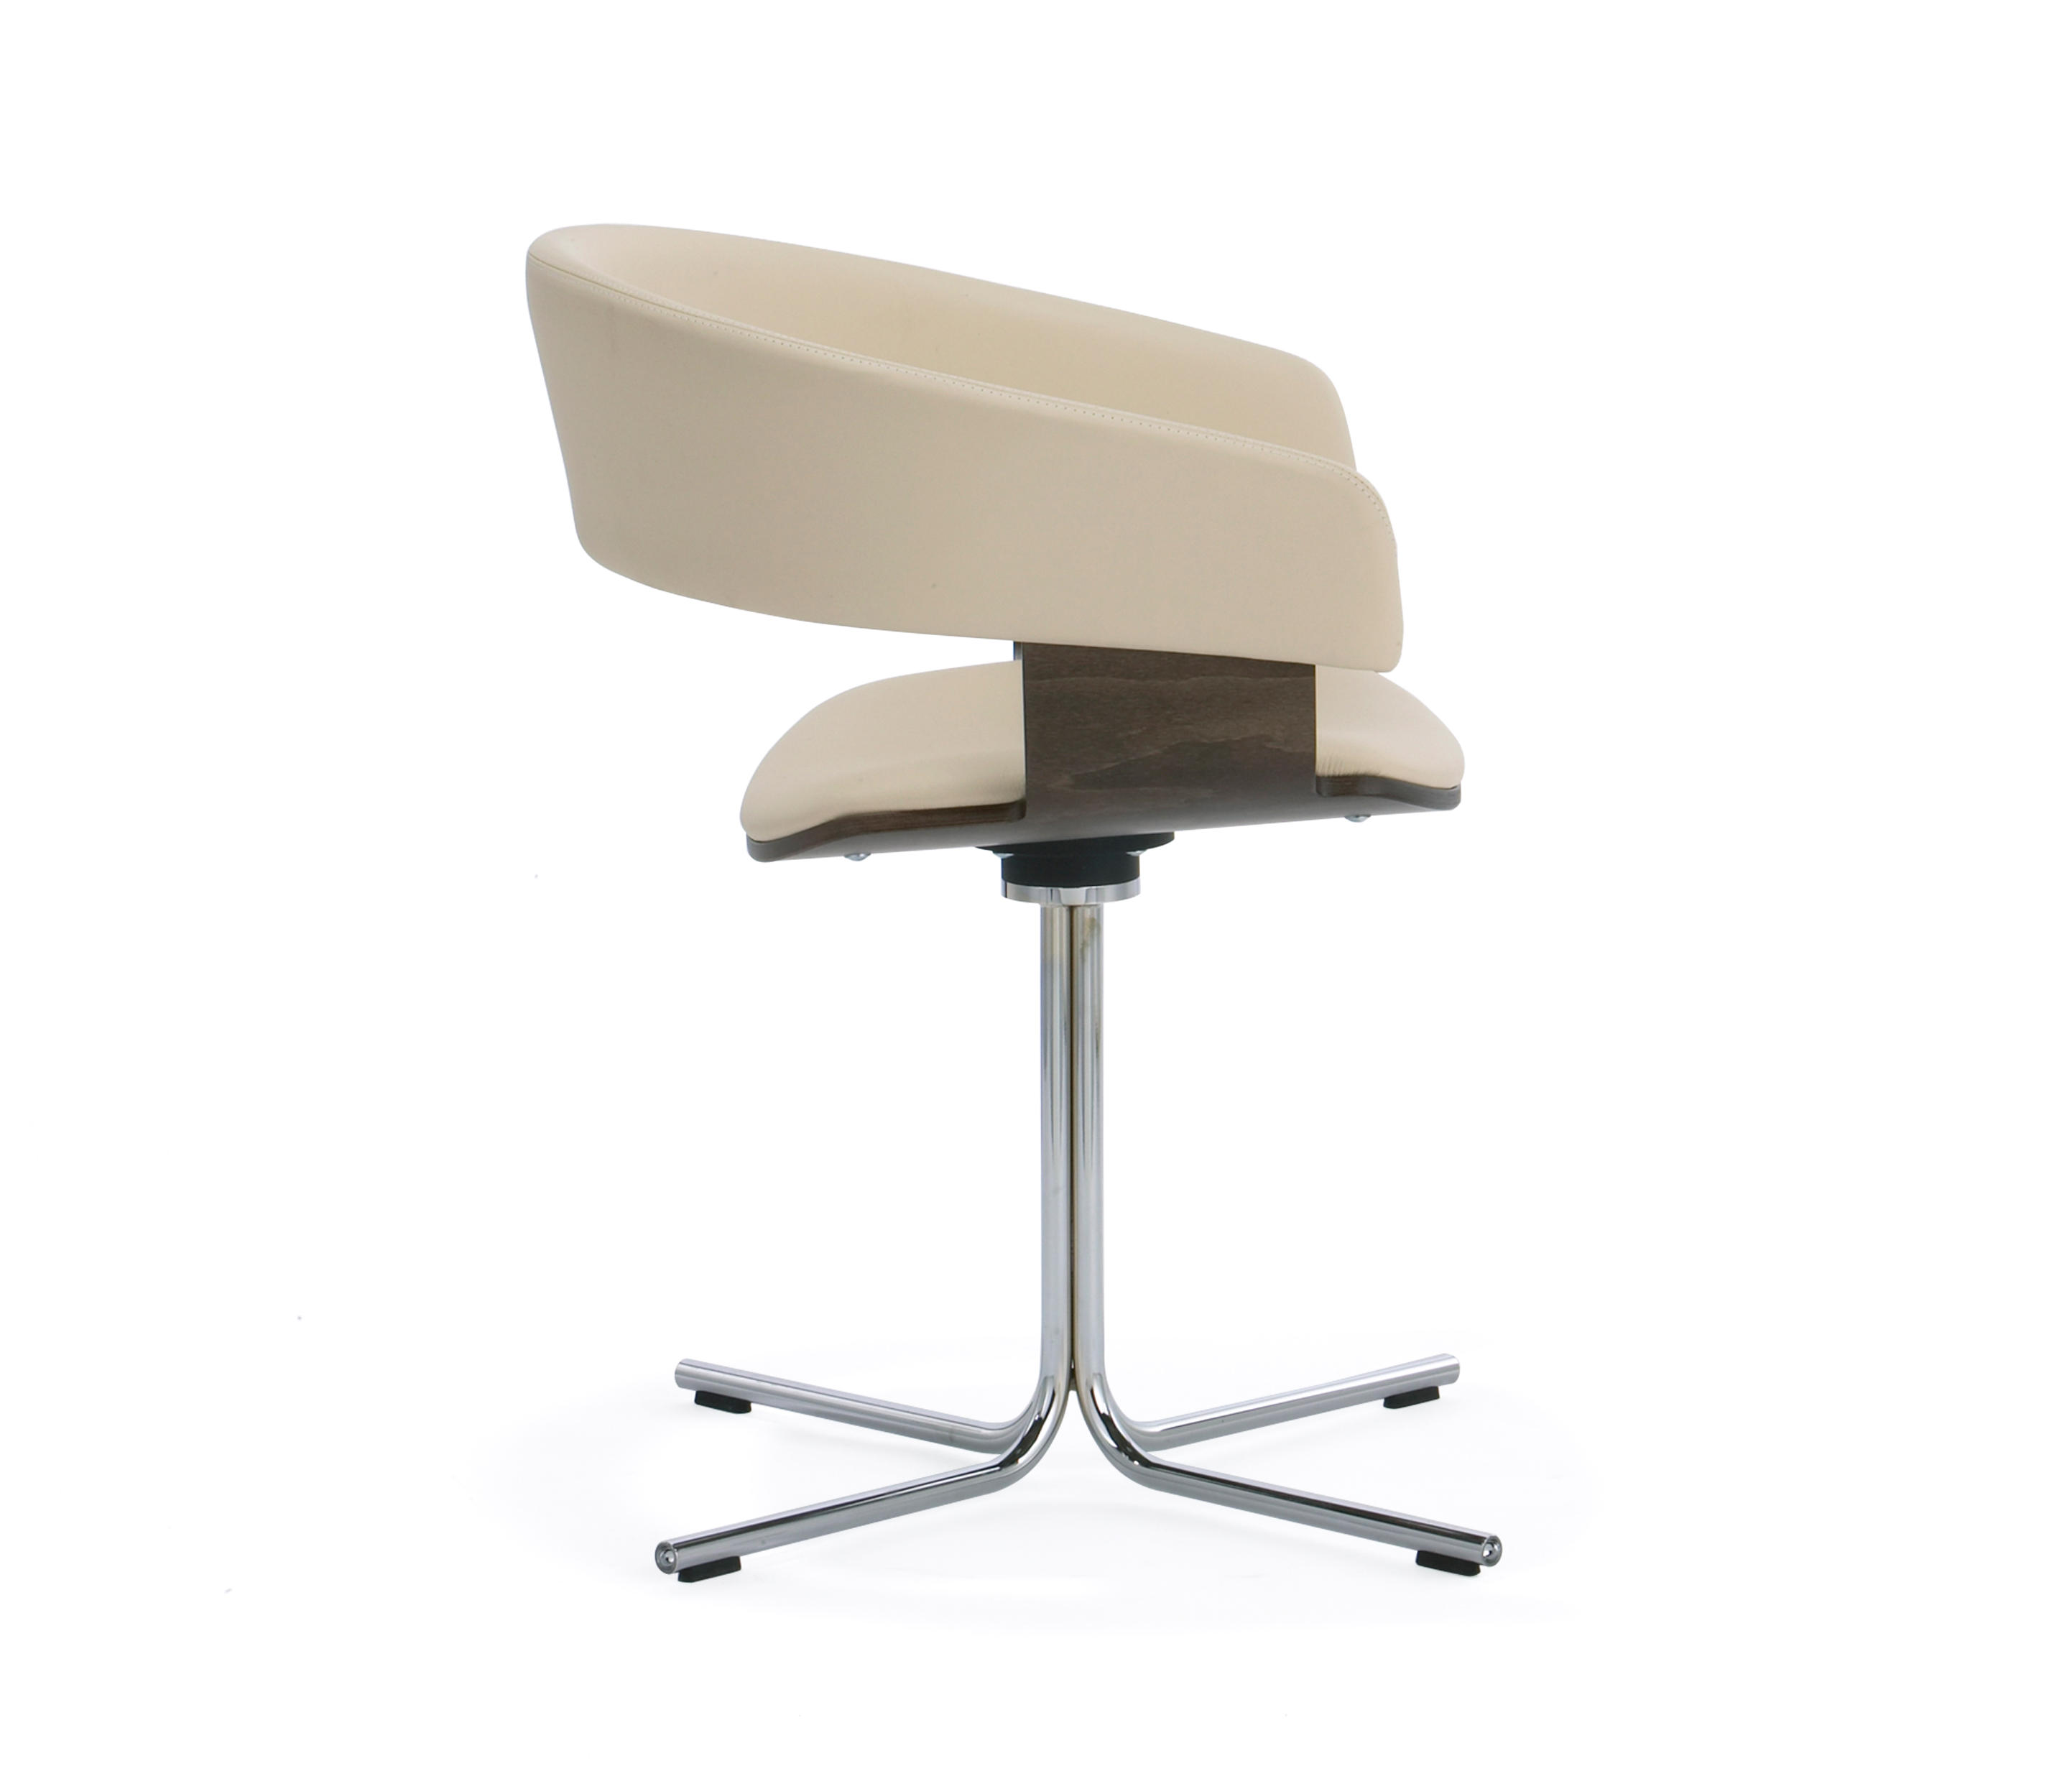 MOBILE Visitors chairs Side chairs from Allermuir Limited